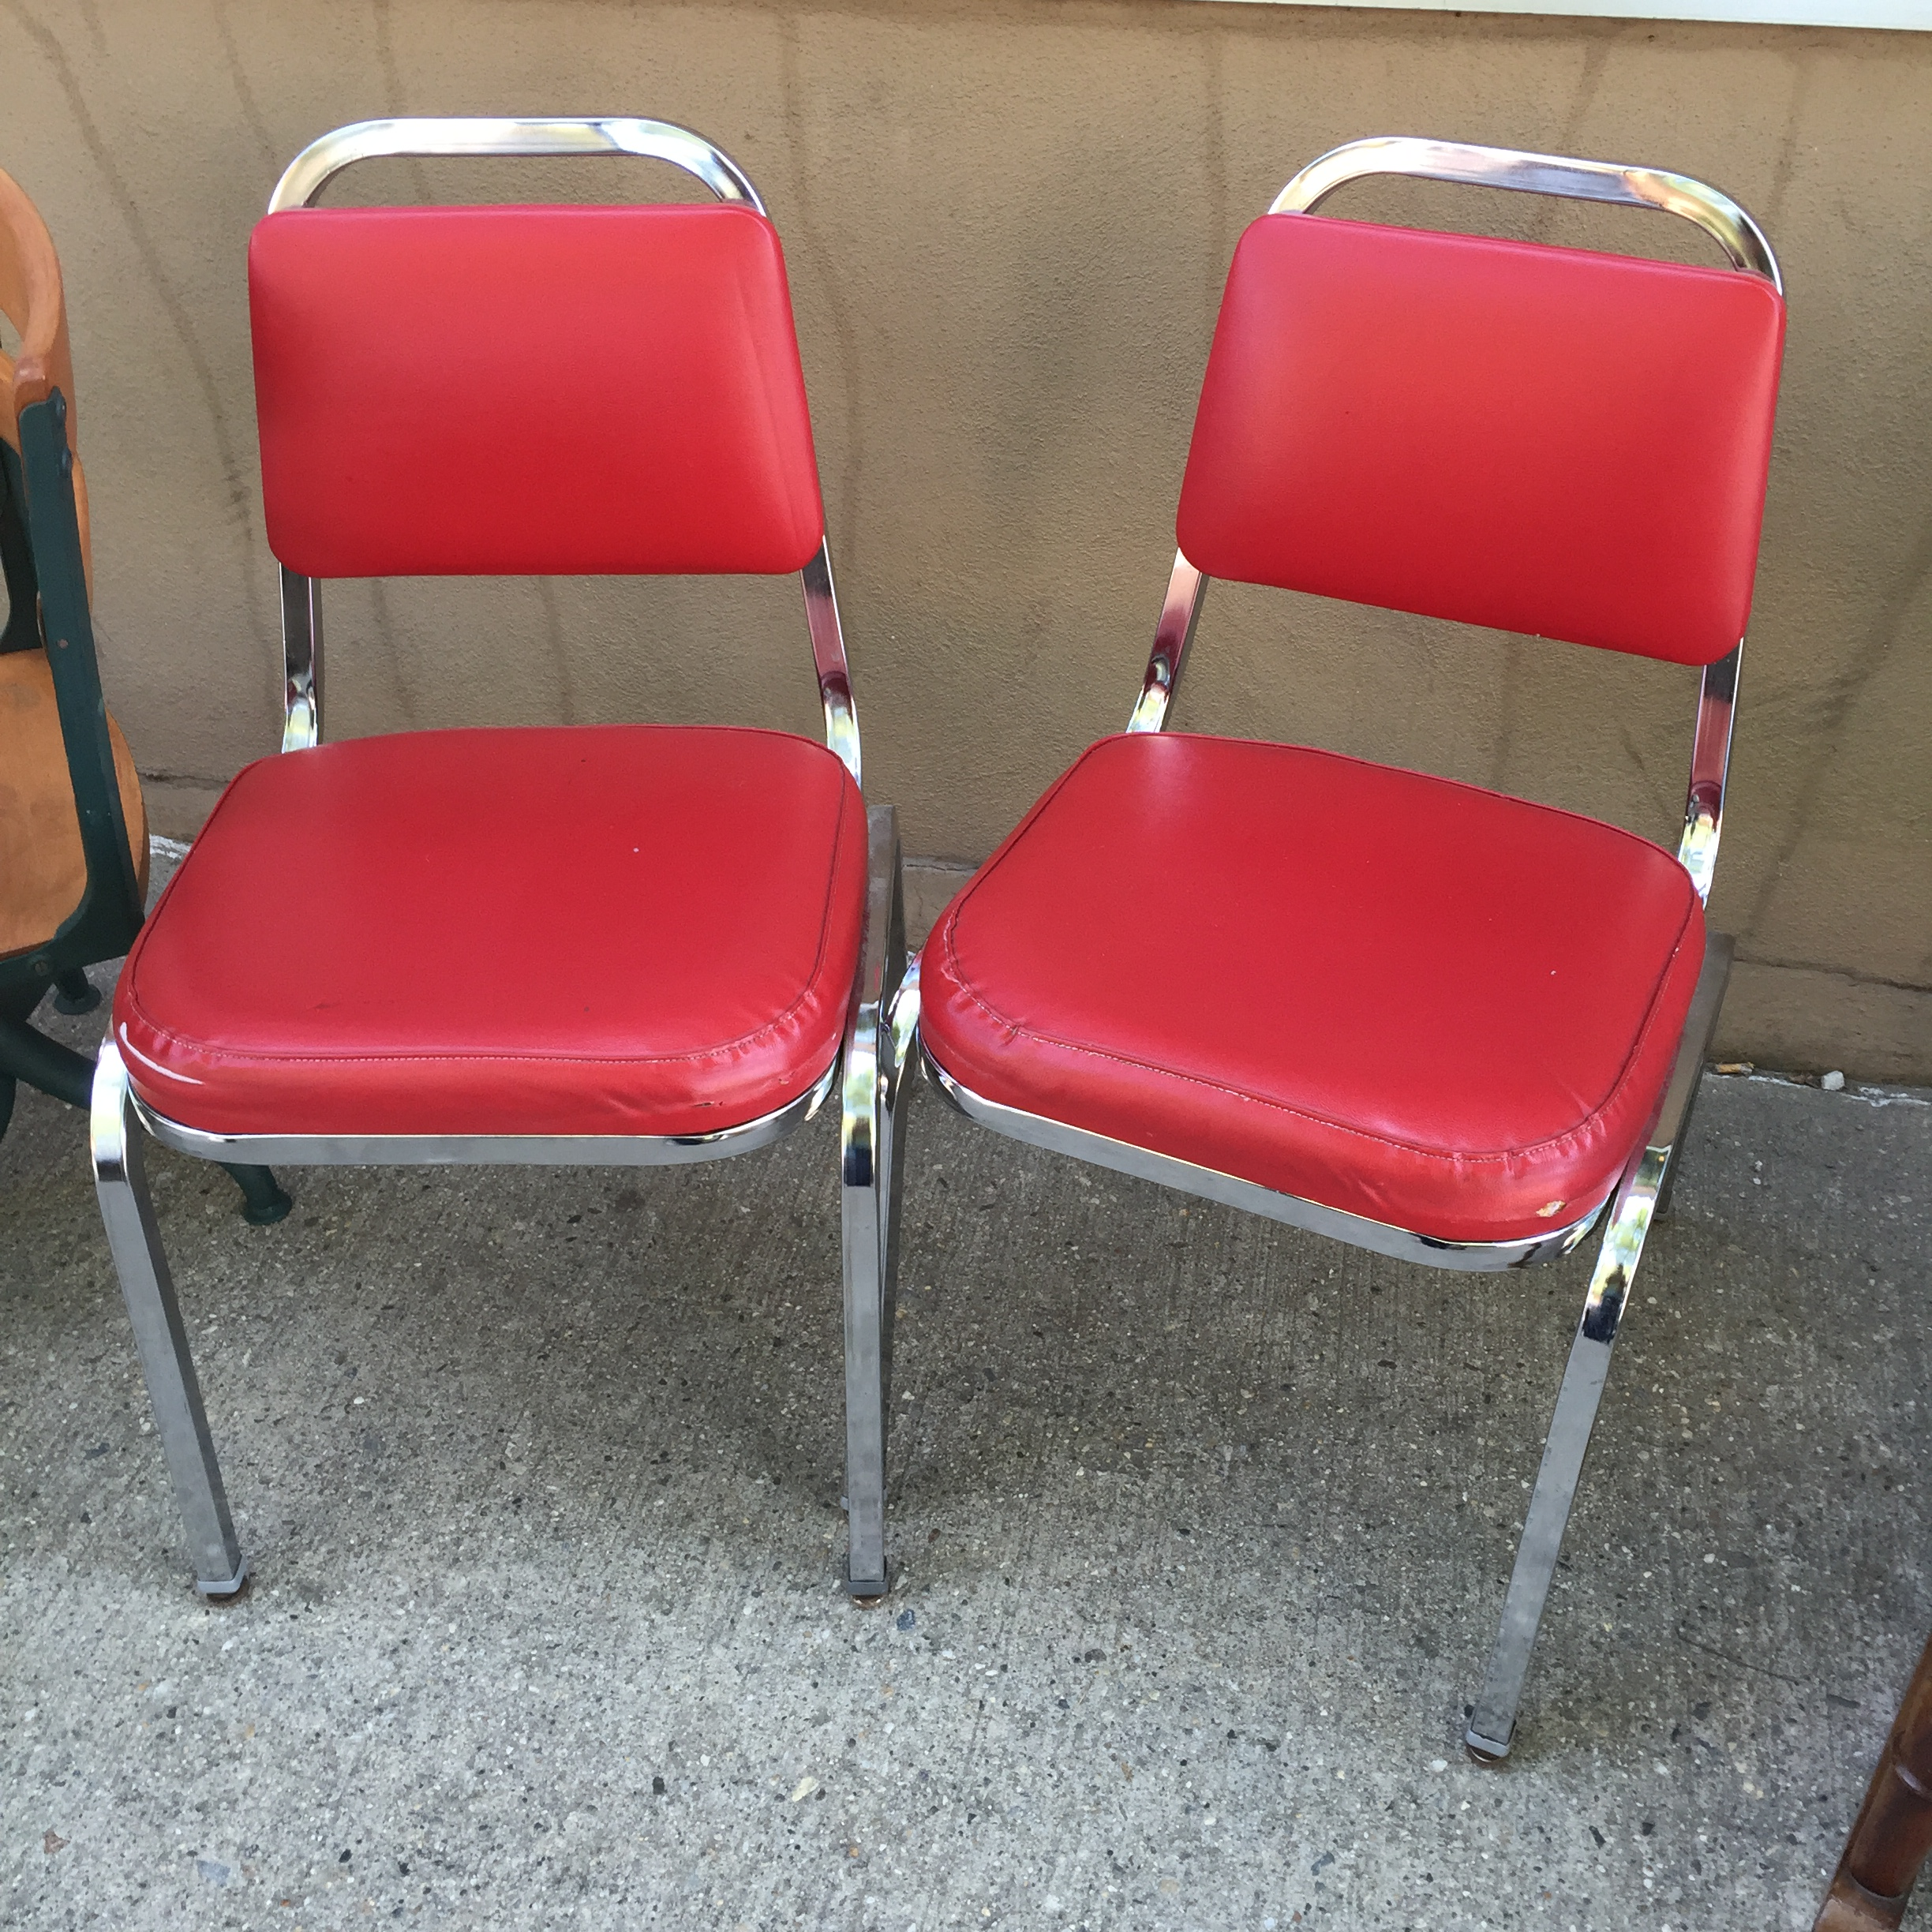 SOLD Basic Red Cushioned Chairs